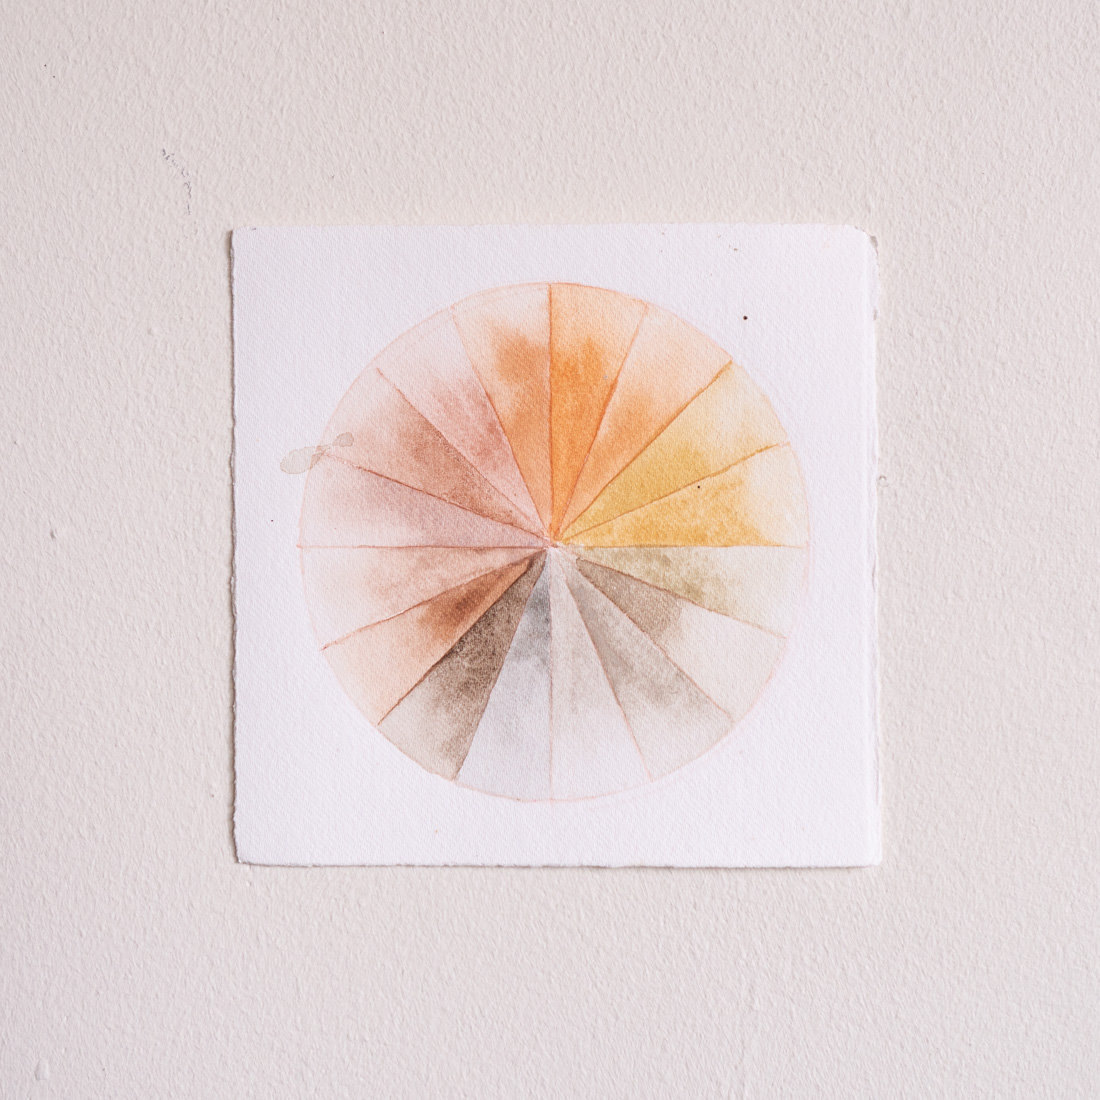 Anakiwi Color Wheel III